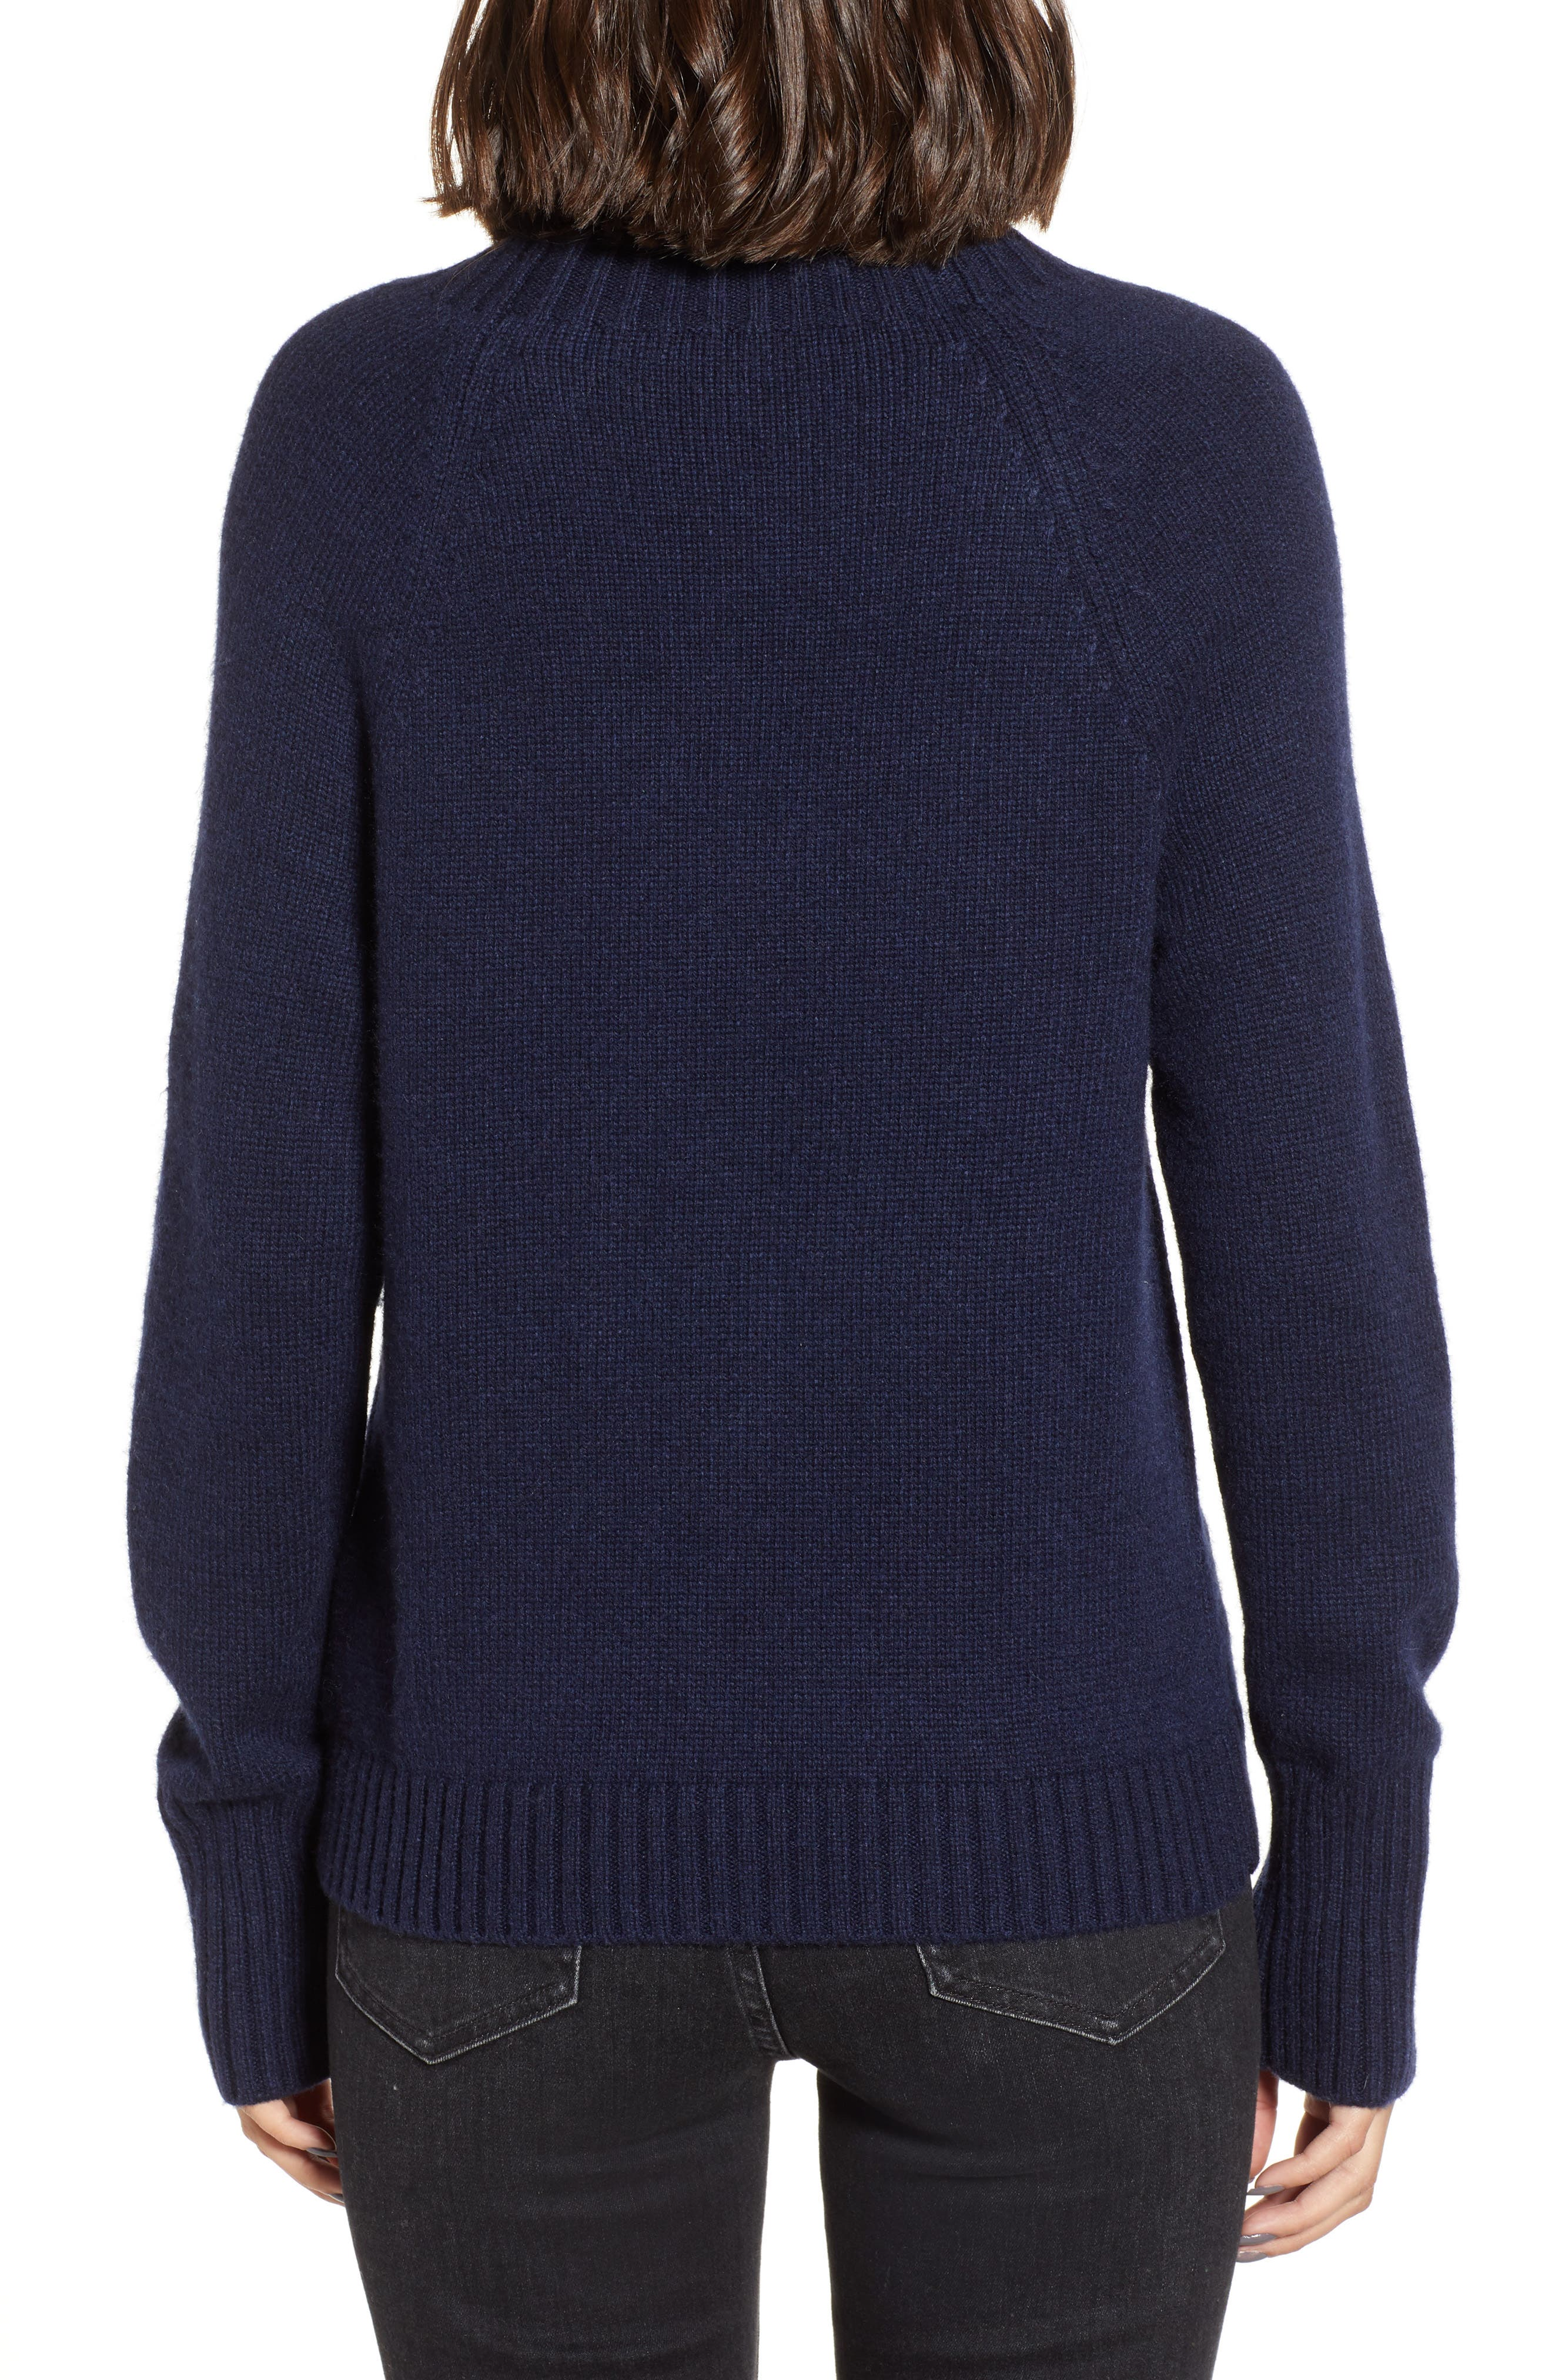 Sweater with Jeweled Buttons,                             Alternate thumbnail 2, color,                             NAVY